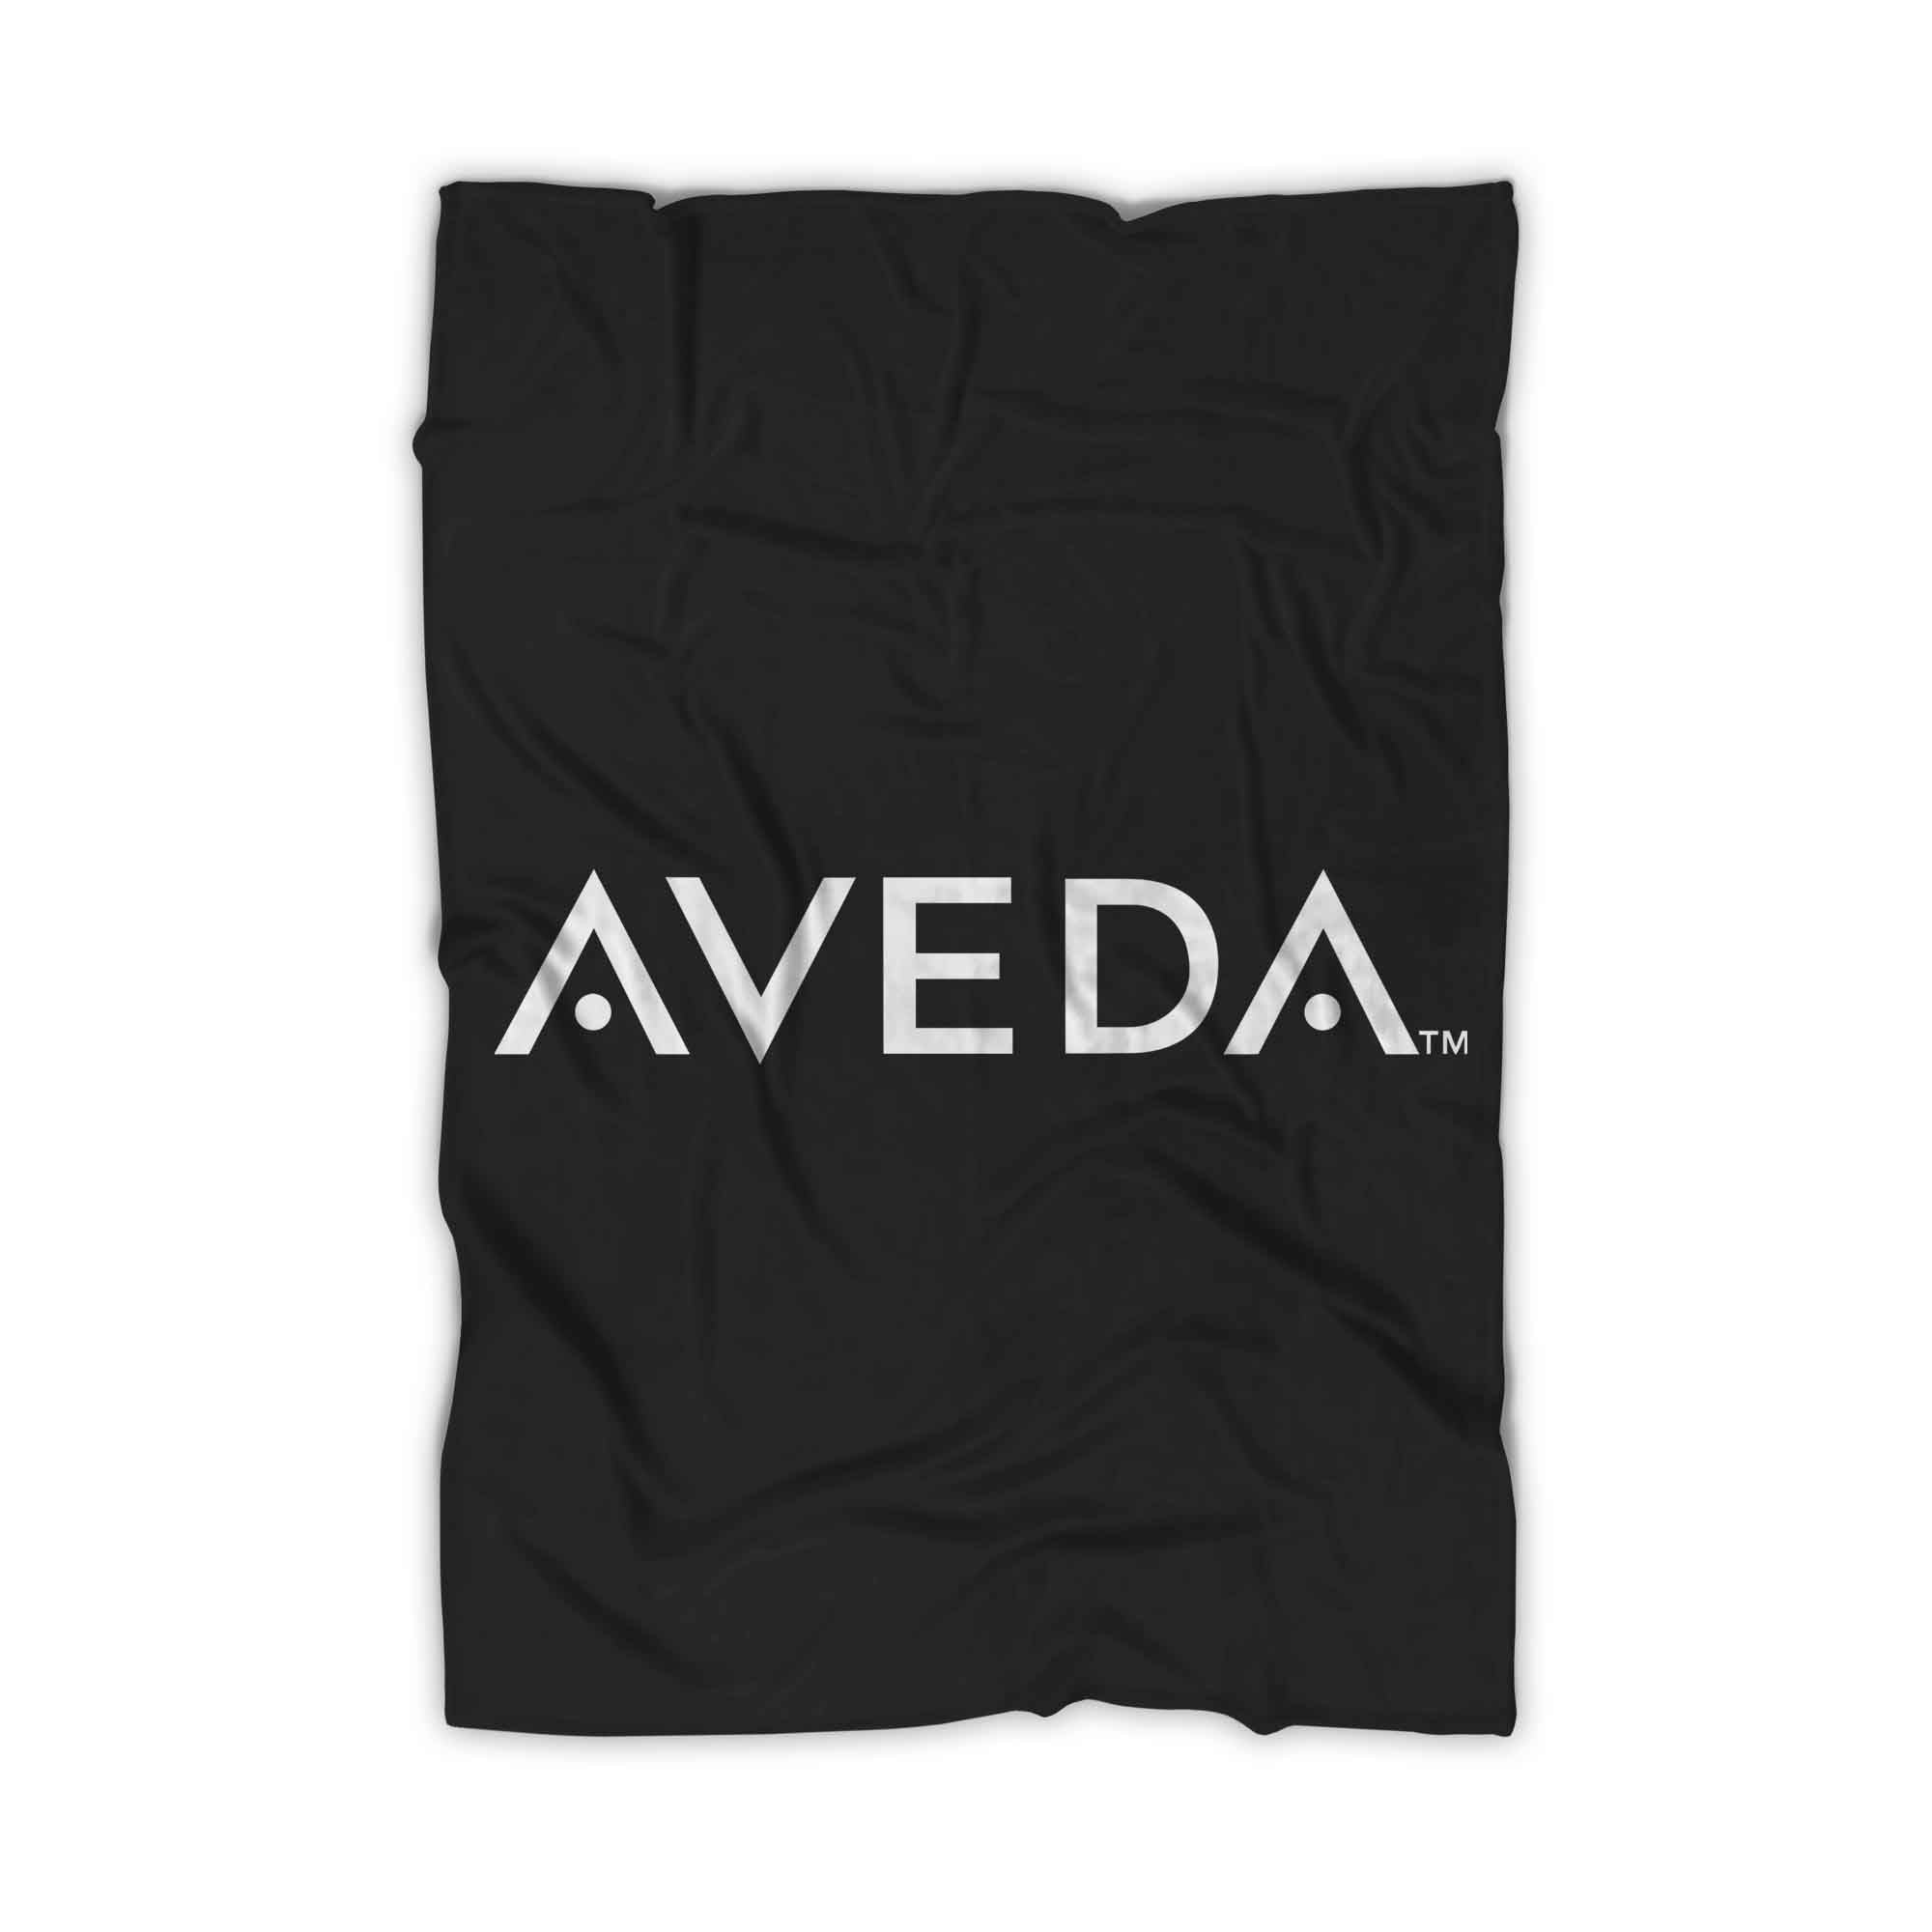 Aveda Skin Care Blanket